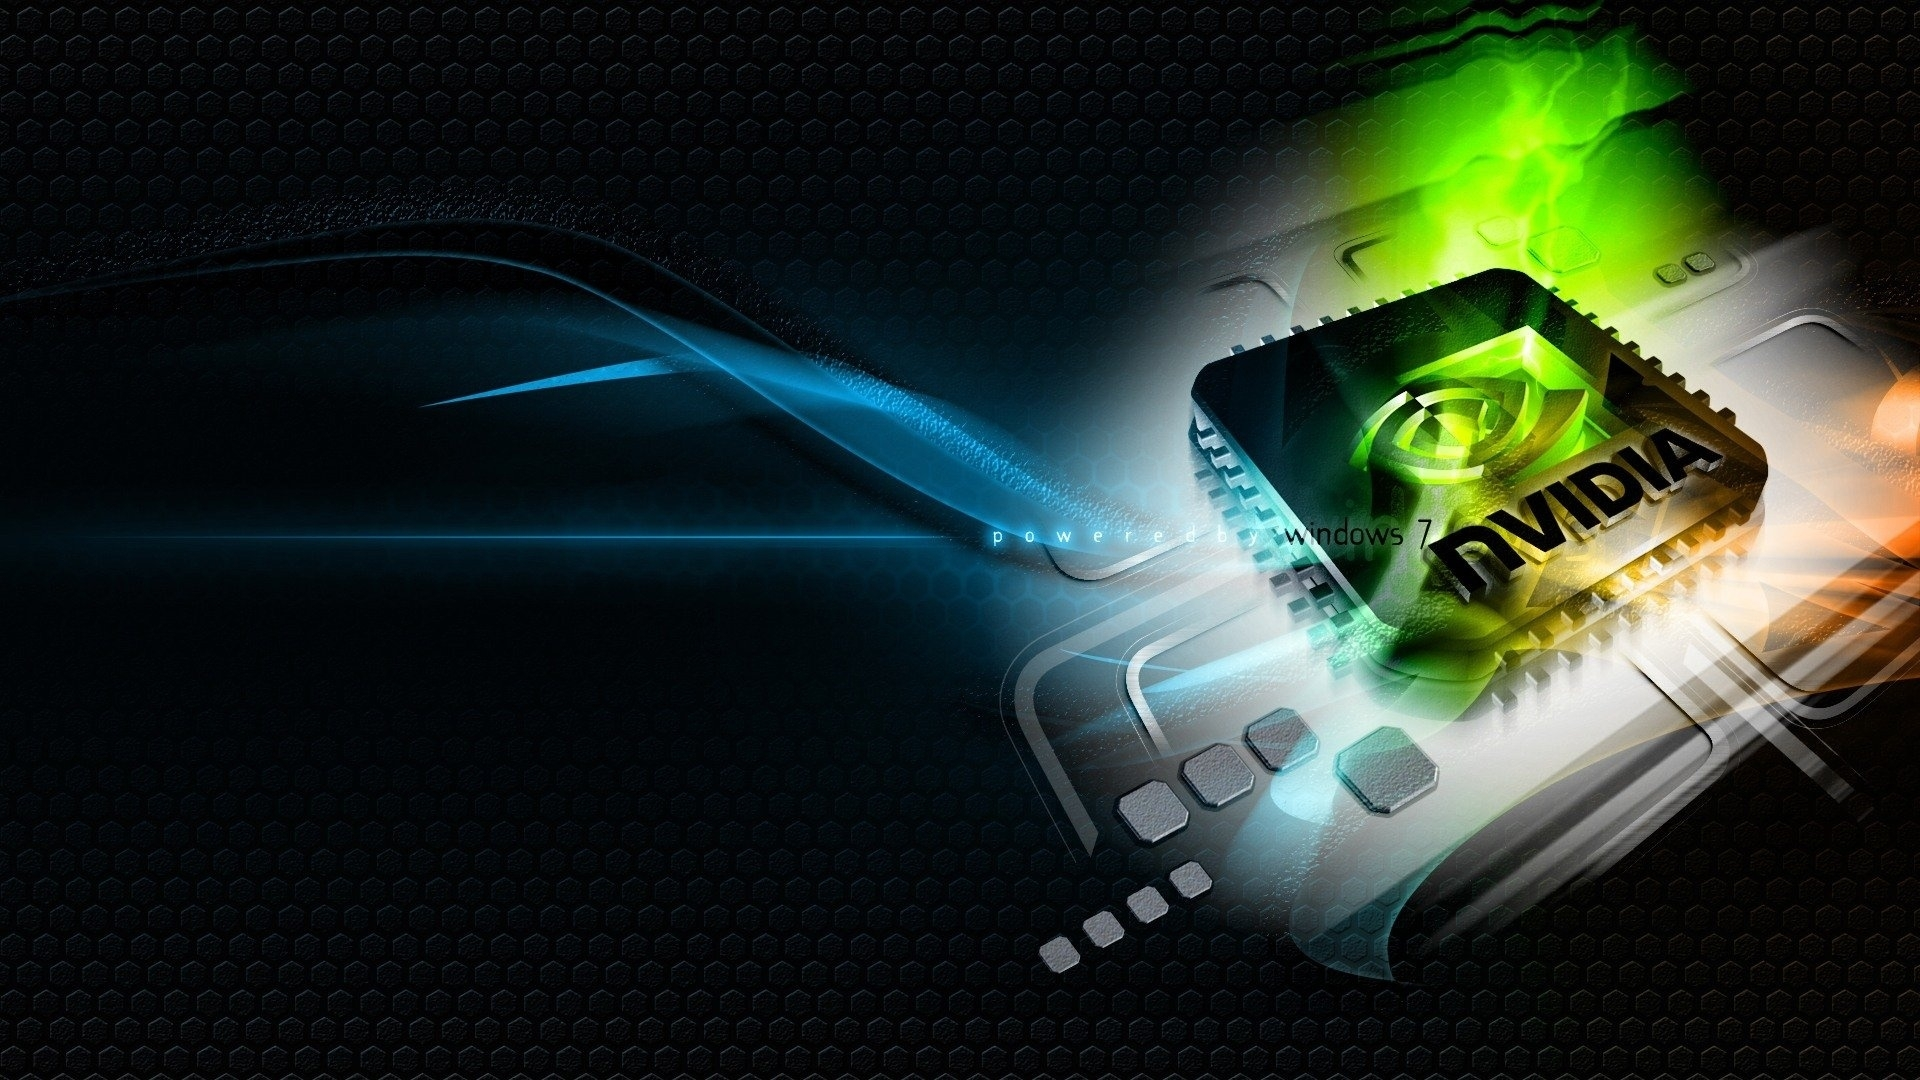 nvidia wallpaper 1920x1080 hd - wallpapersafari | all wallpapers